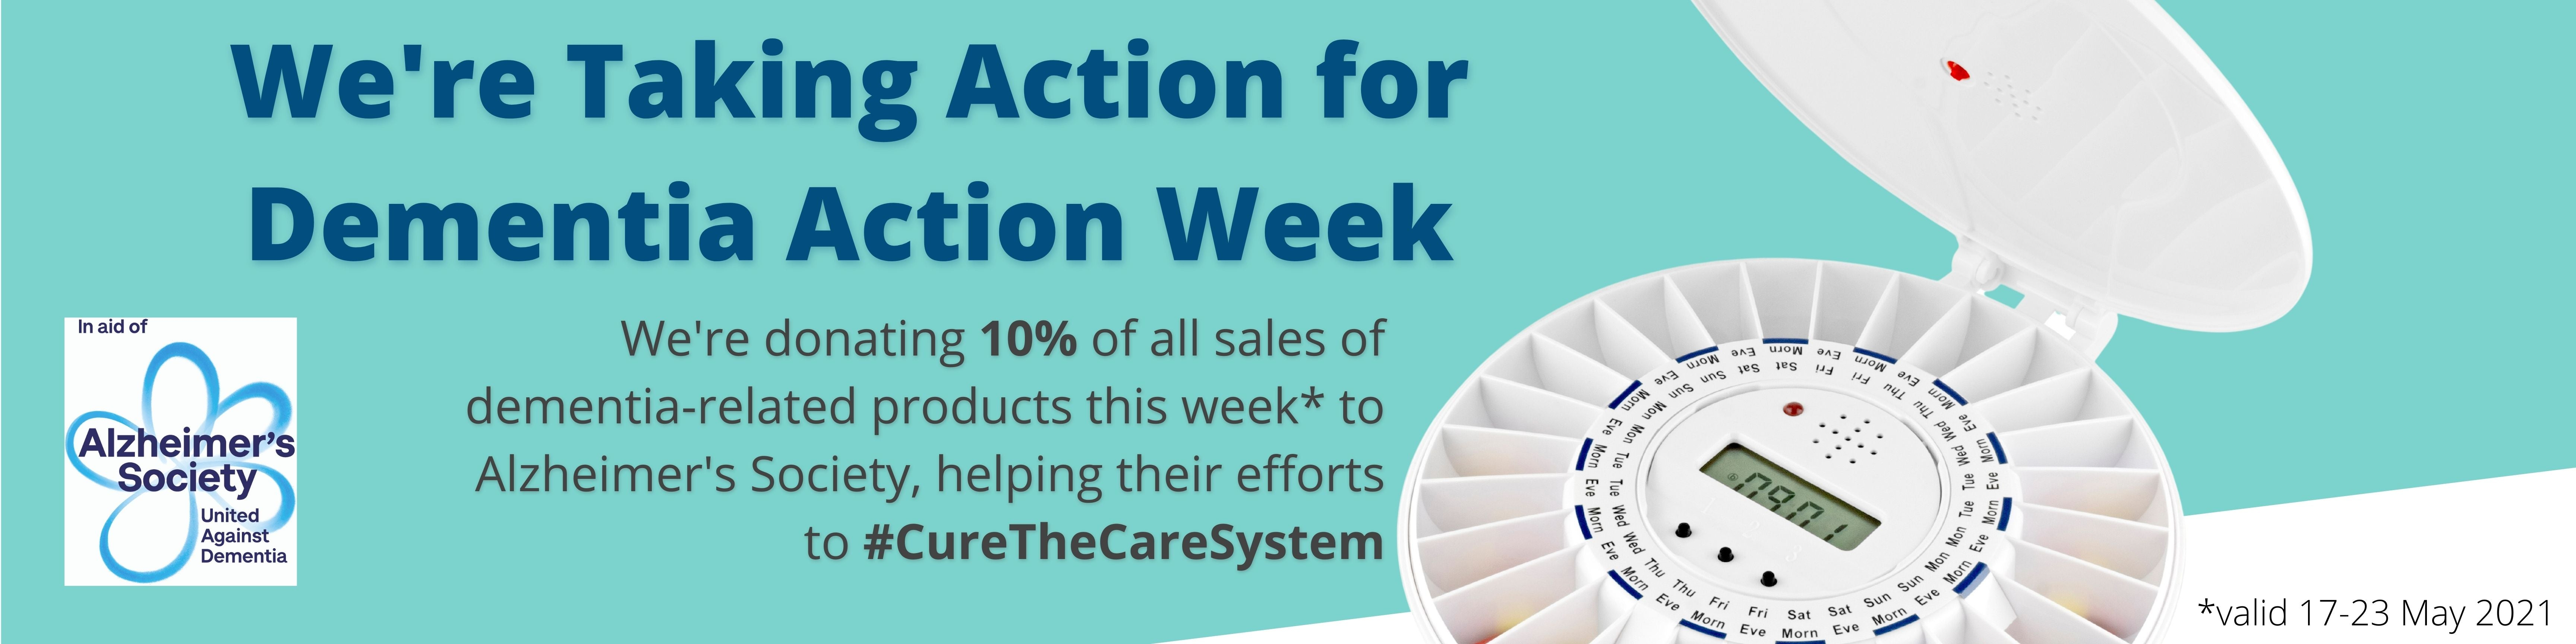 We're Taking Action for Dementia Action Week - 10% of all sales of dementia care products will be donated to Alzheimer's Society this week (17-23 May 2021), helping them to make dementia care accessible for all and #CureTheCareSystem